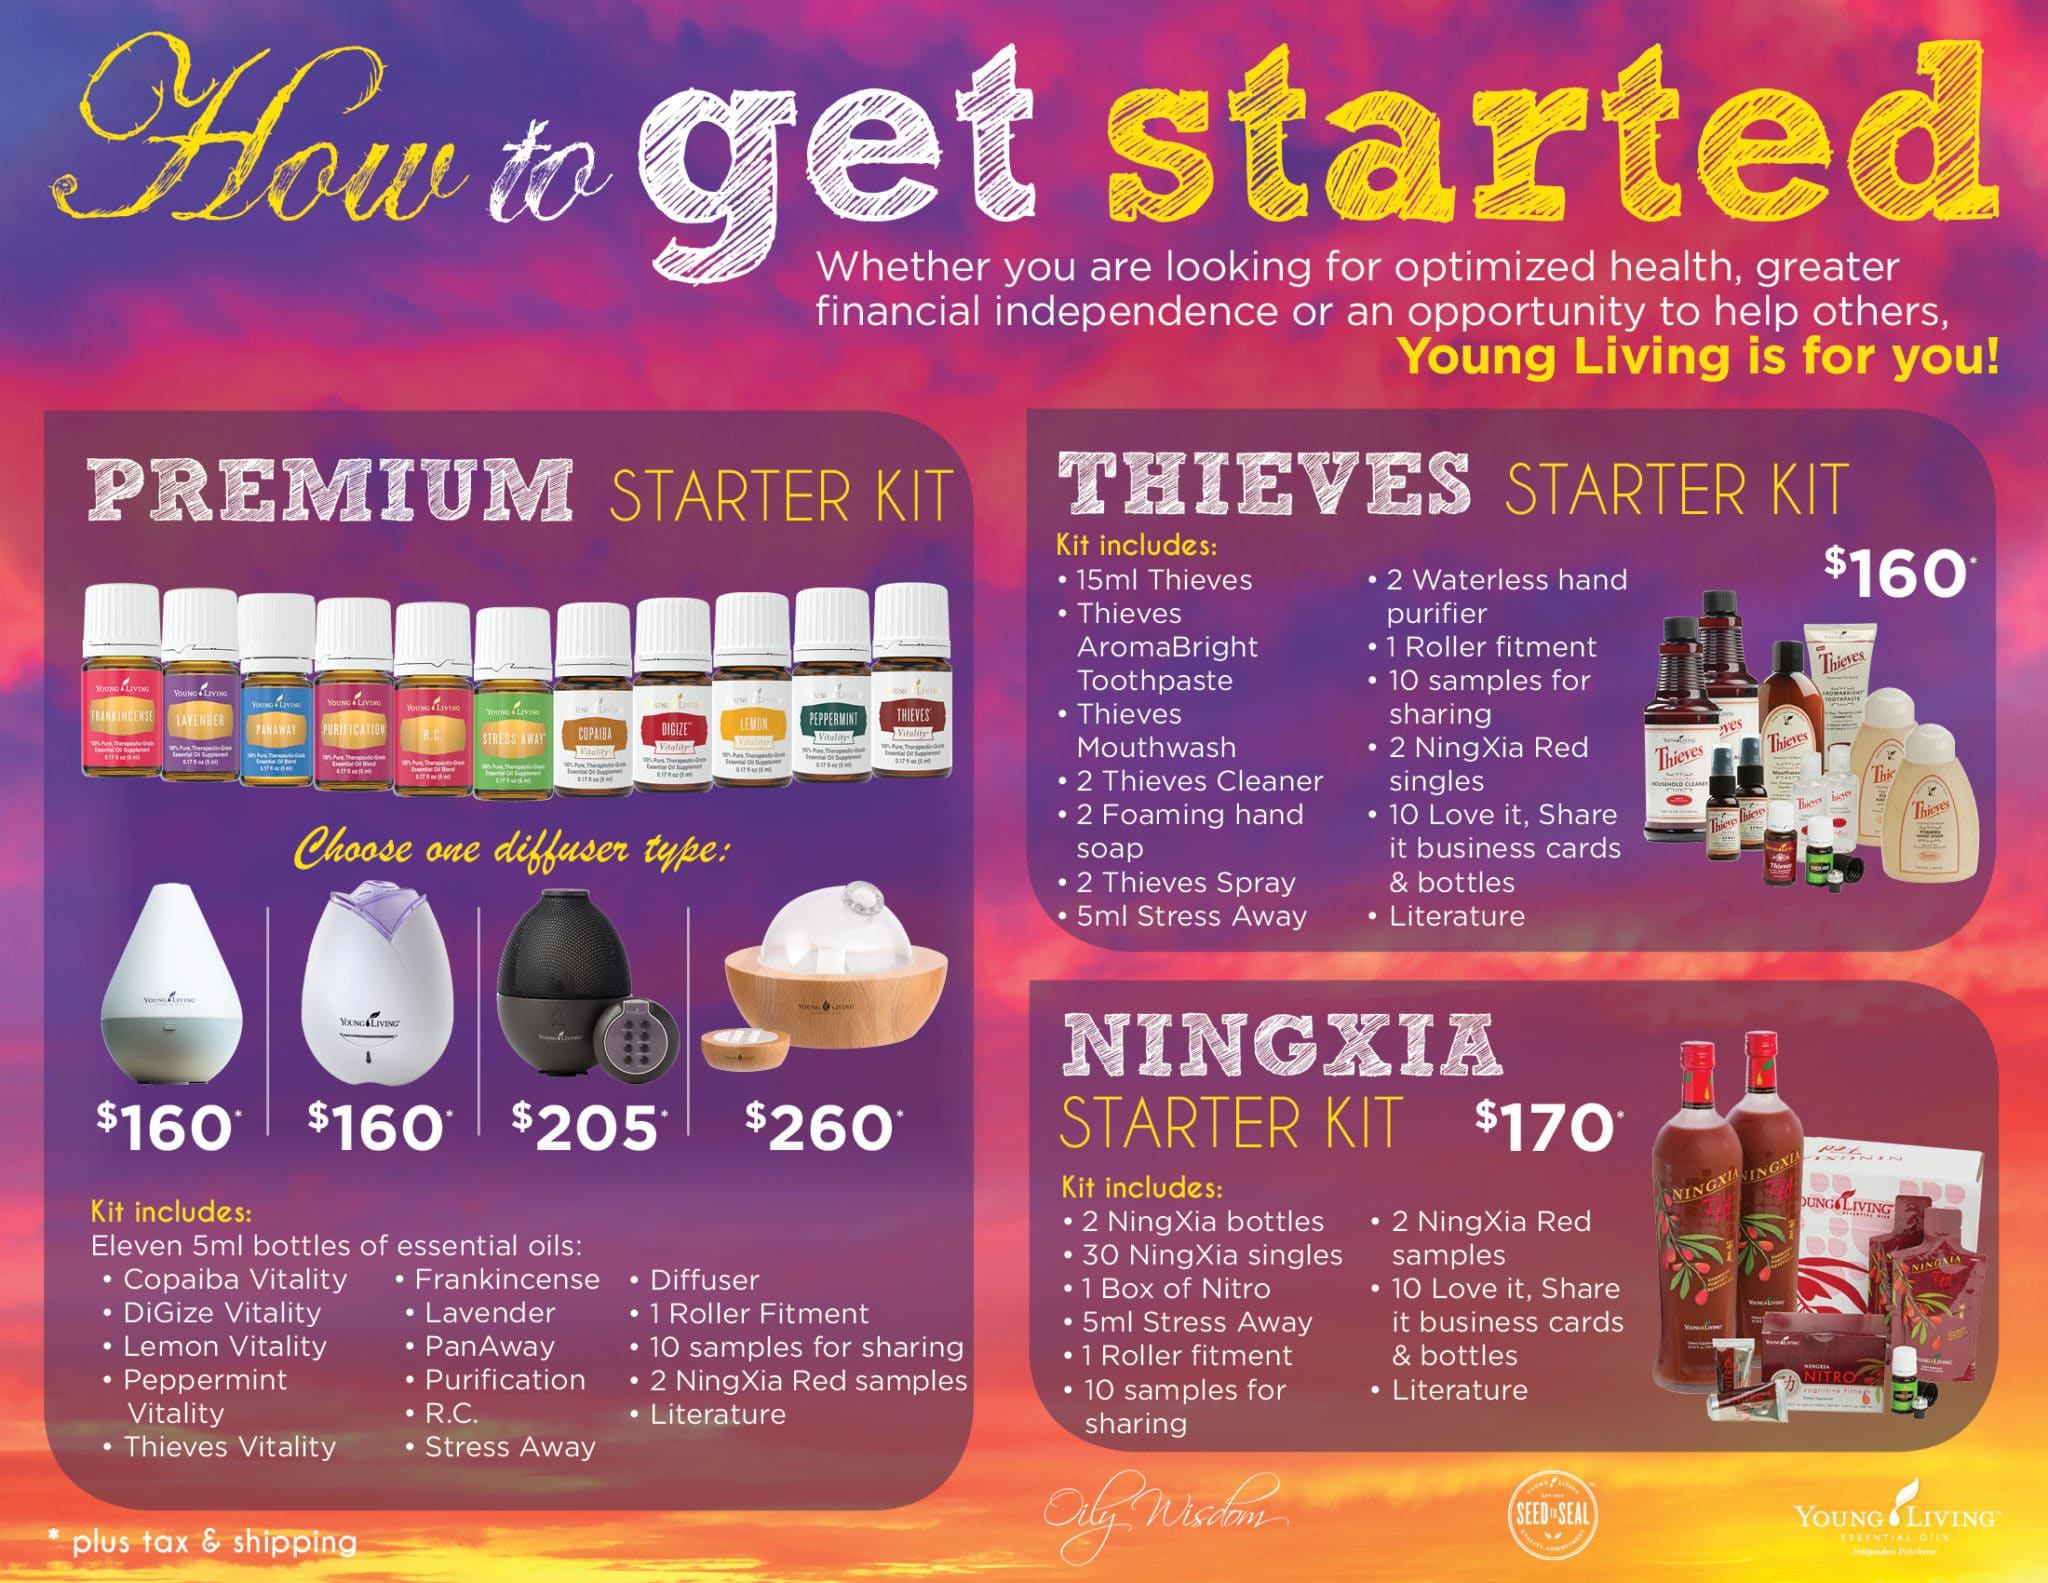 Young Living's Premium Starter Kits - the best and cheapest way to get started with essential oils!